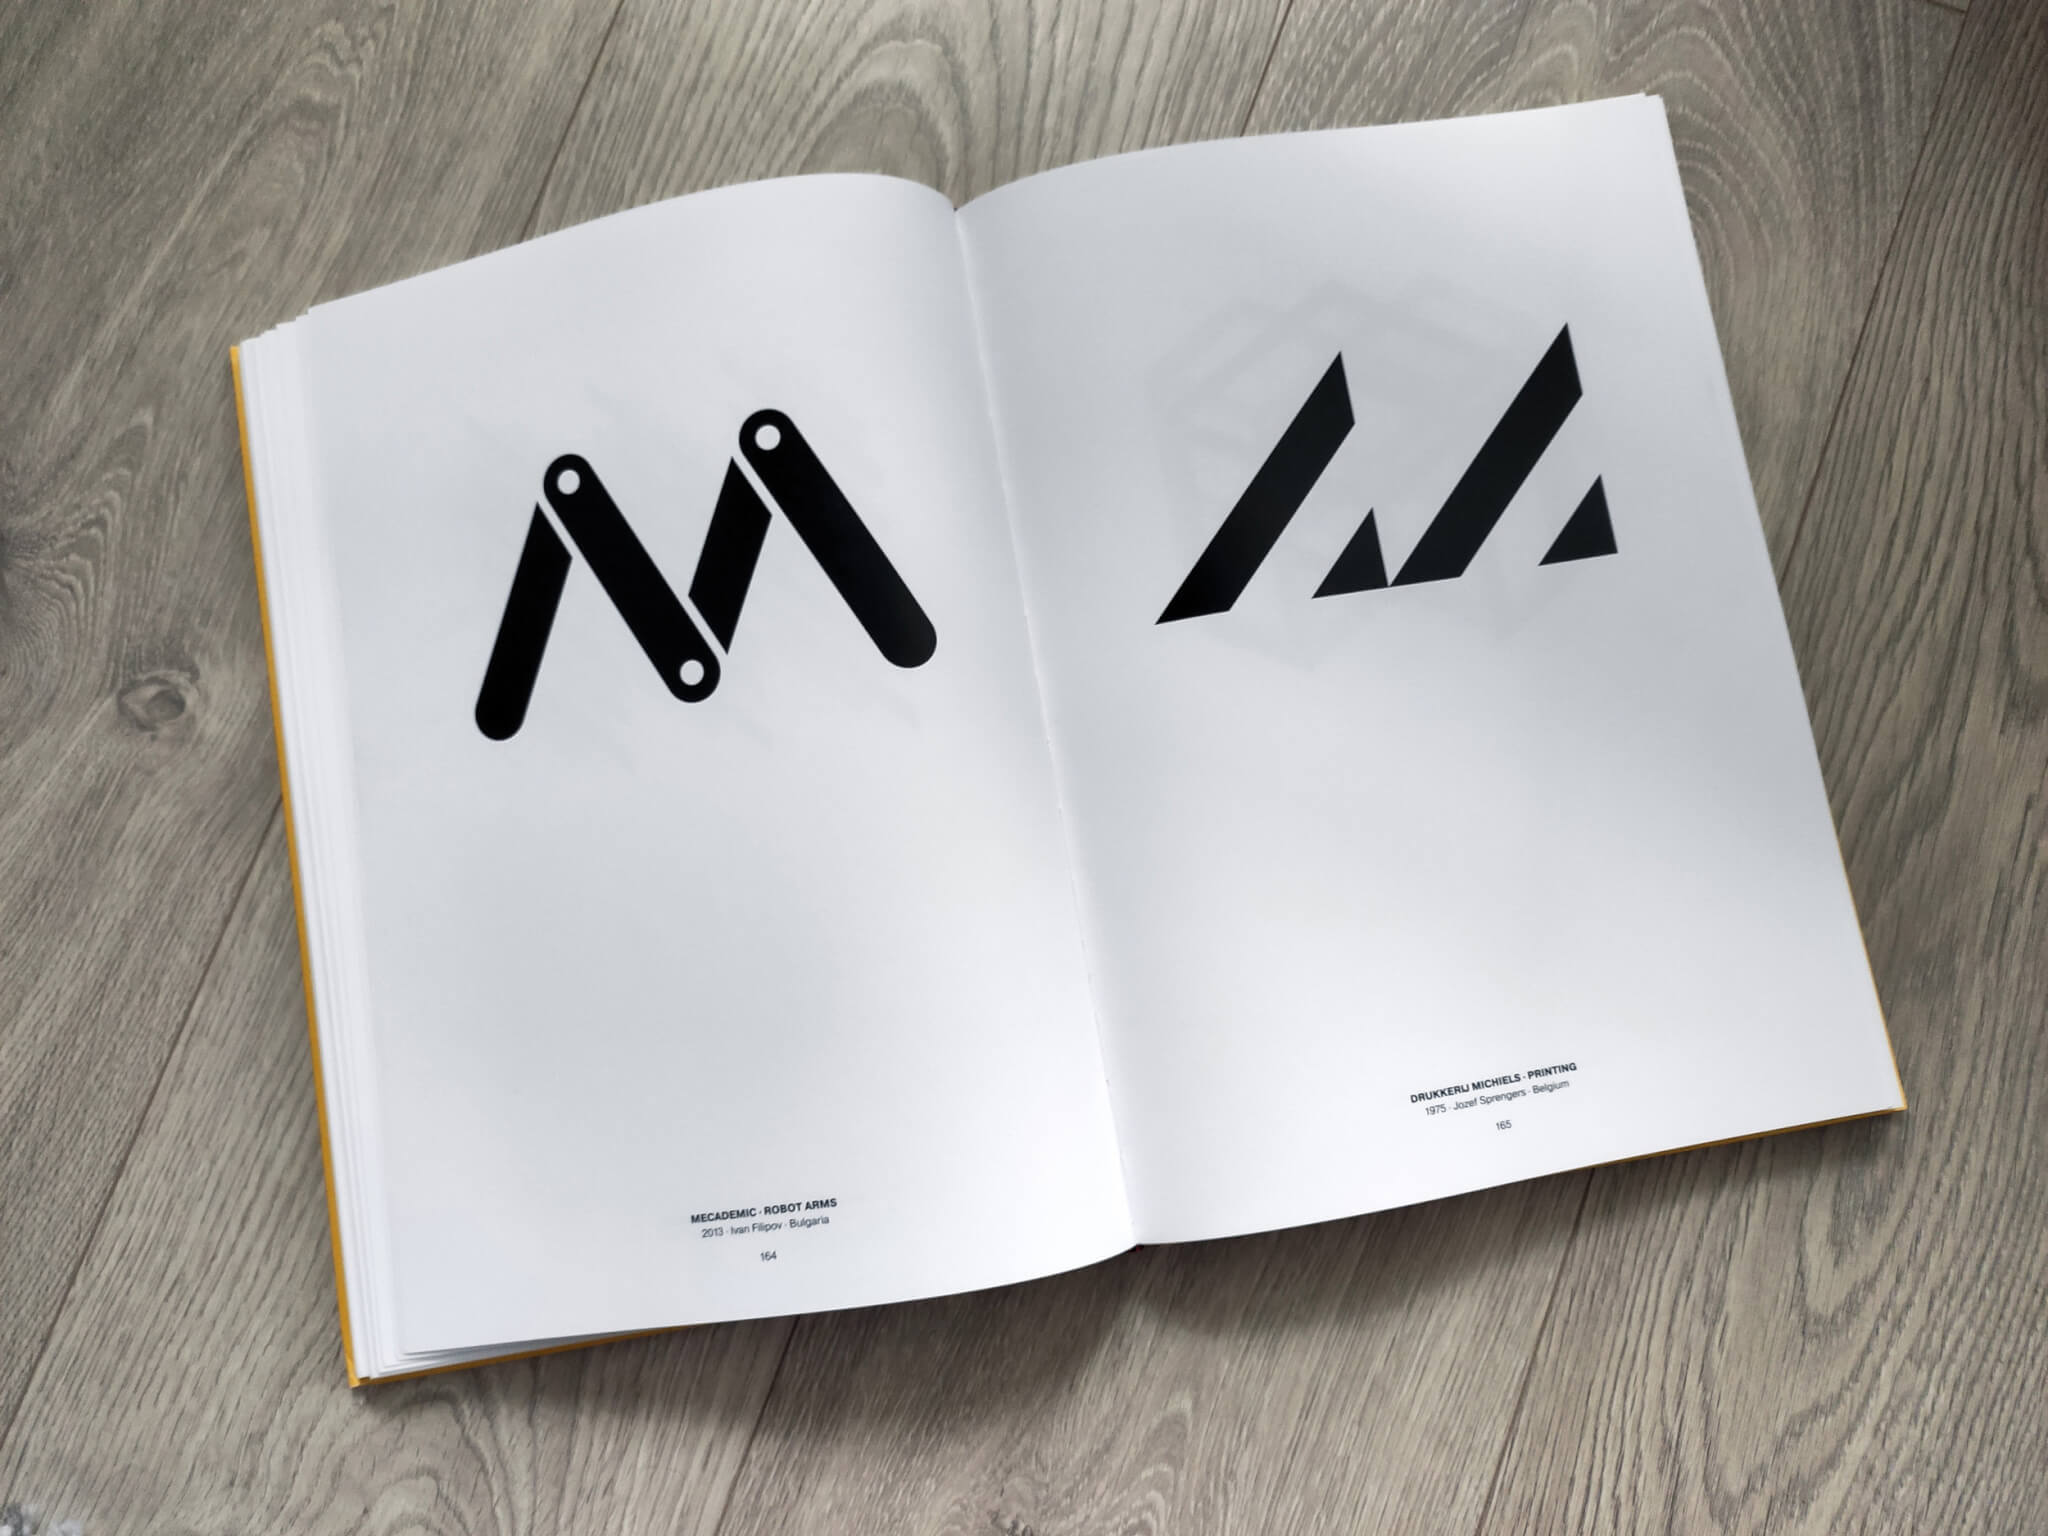 Symbols-as-Letters-Open-Book